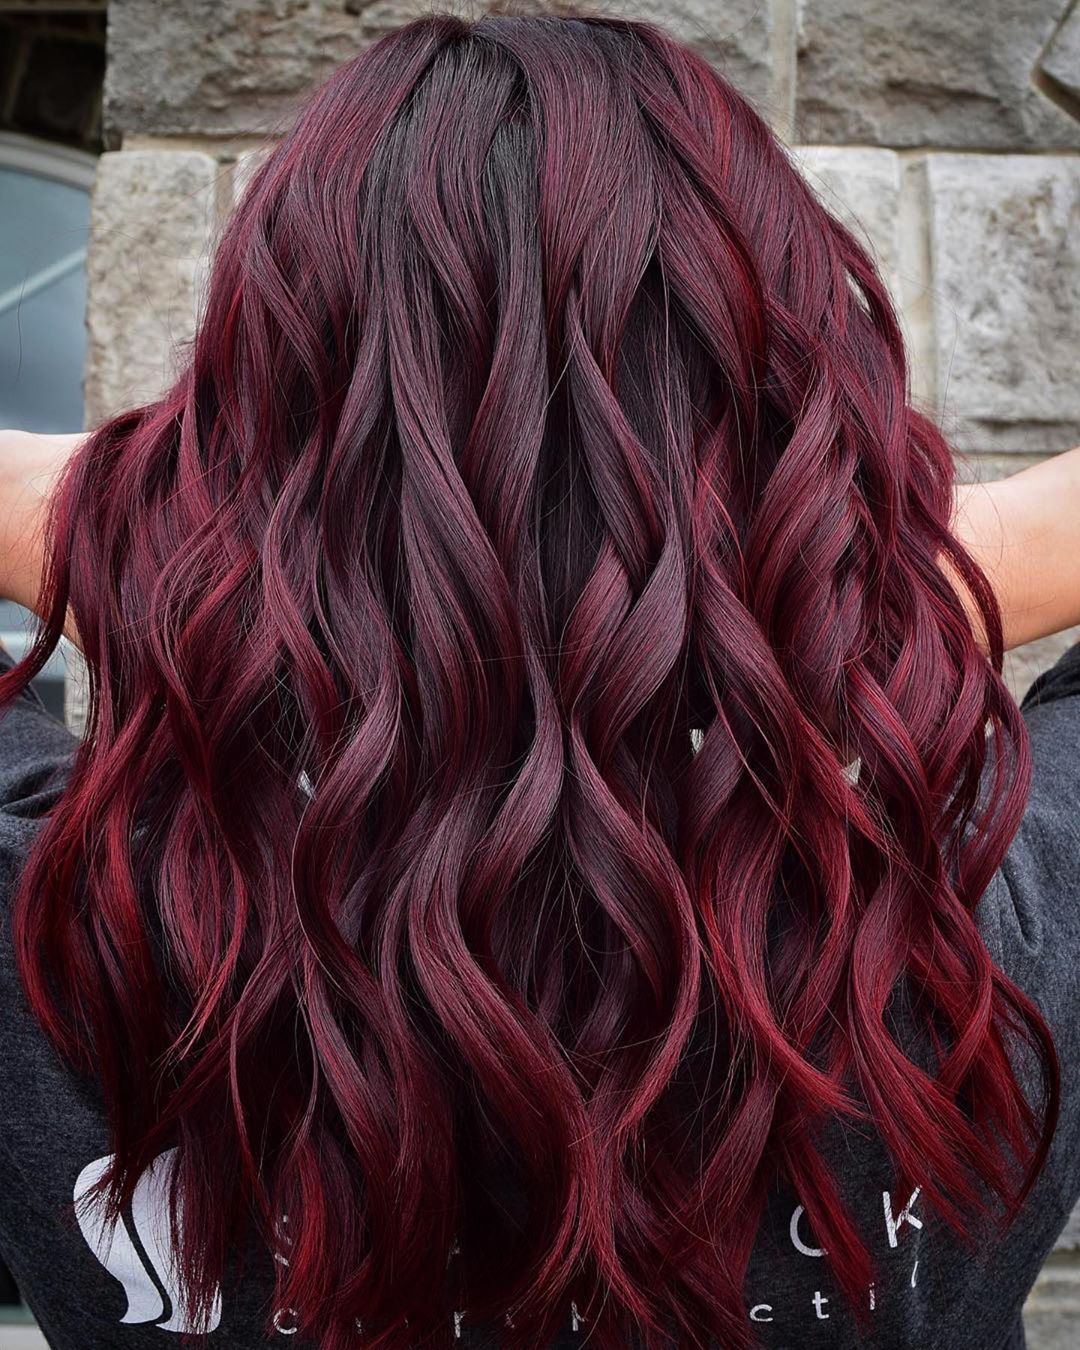 50 New Red Hair Ideas Red Color Trends For 2021 Hair Adviser